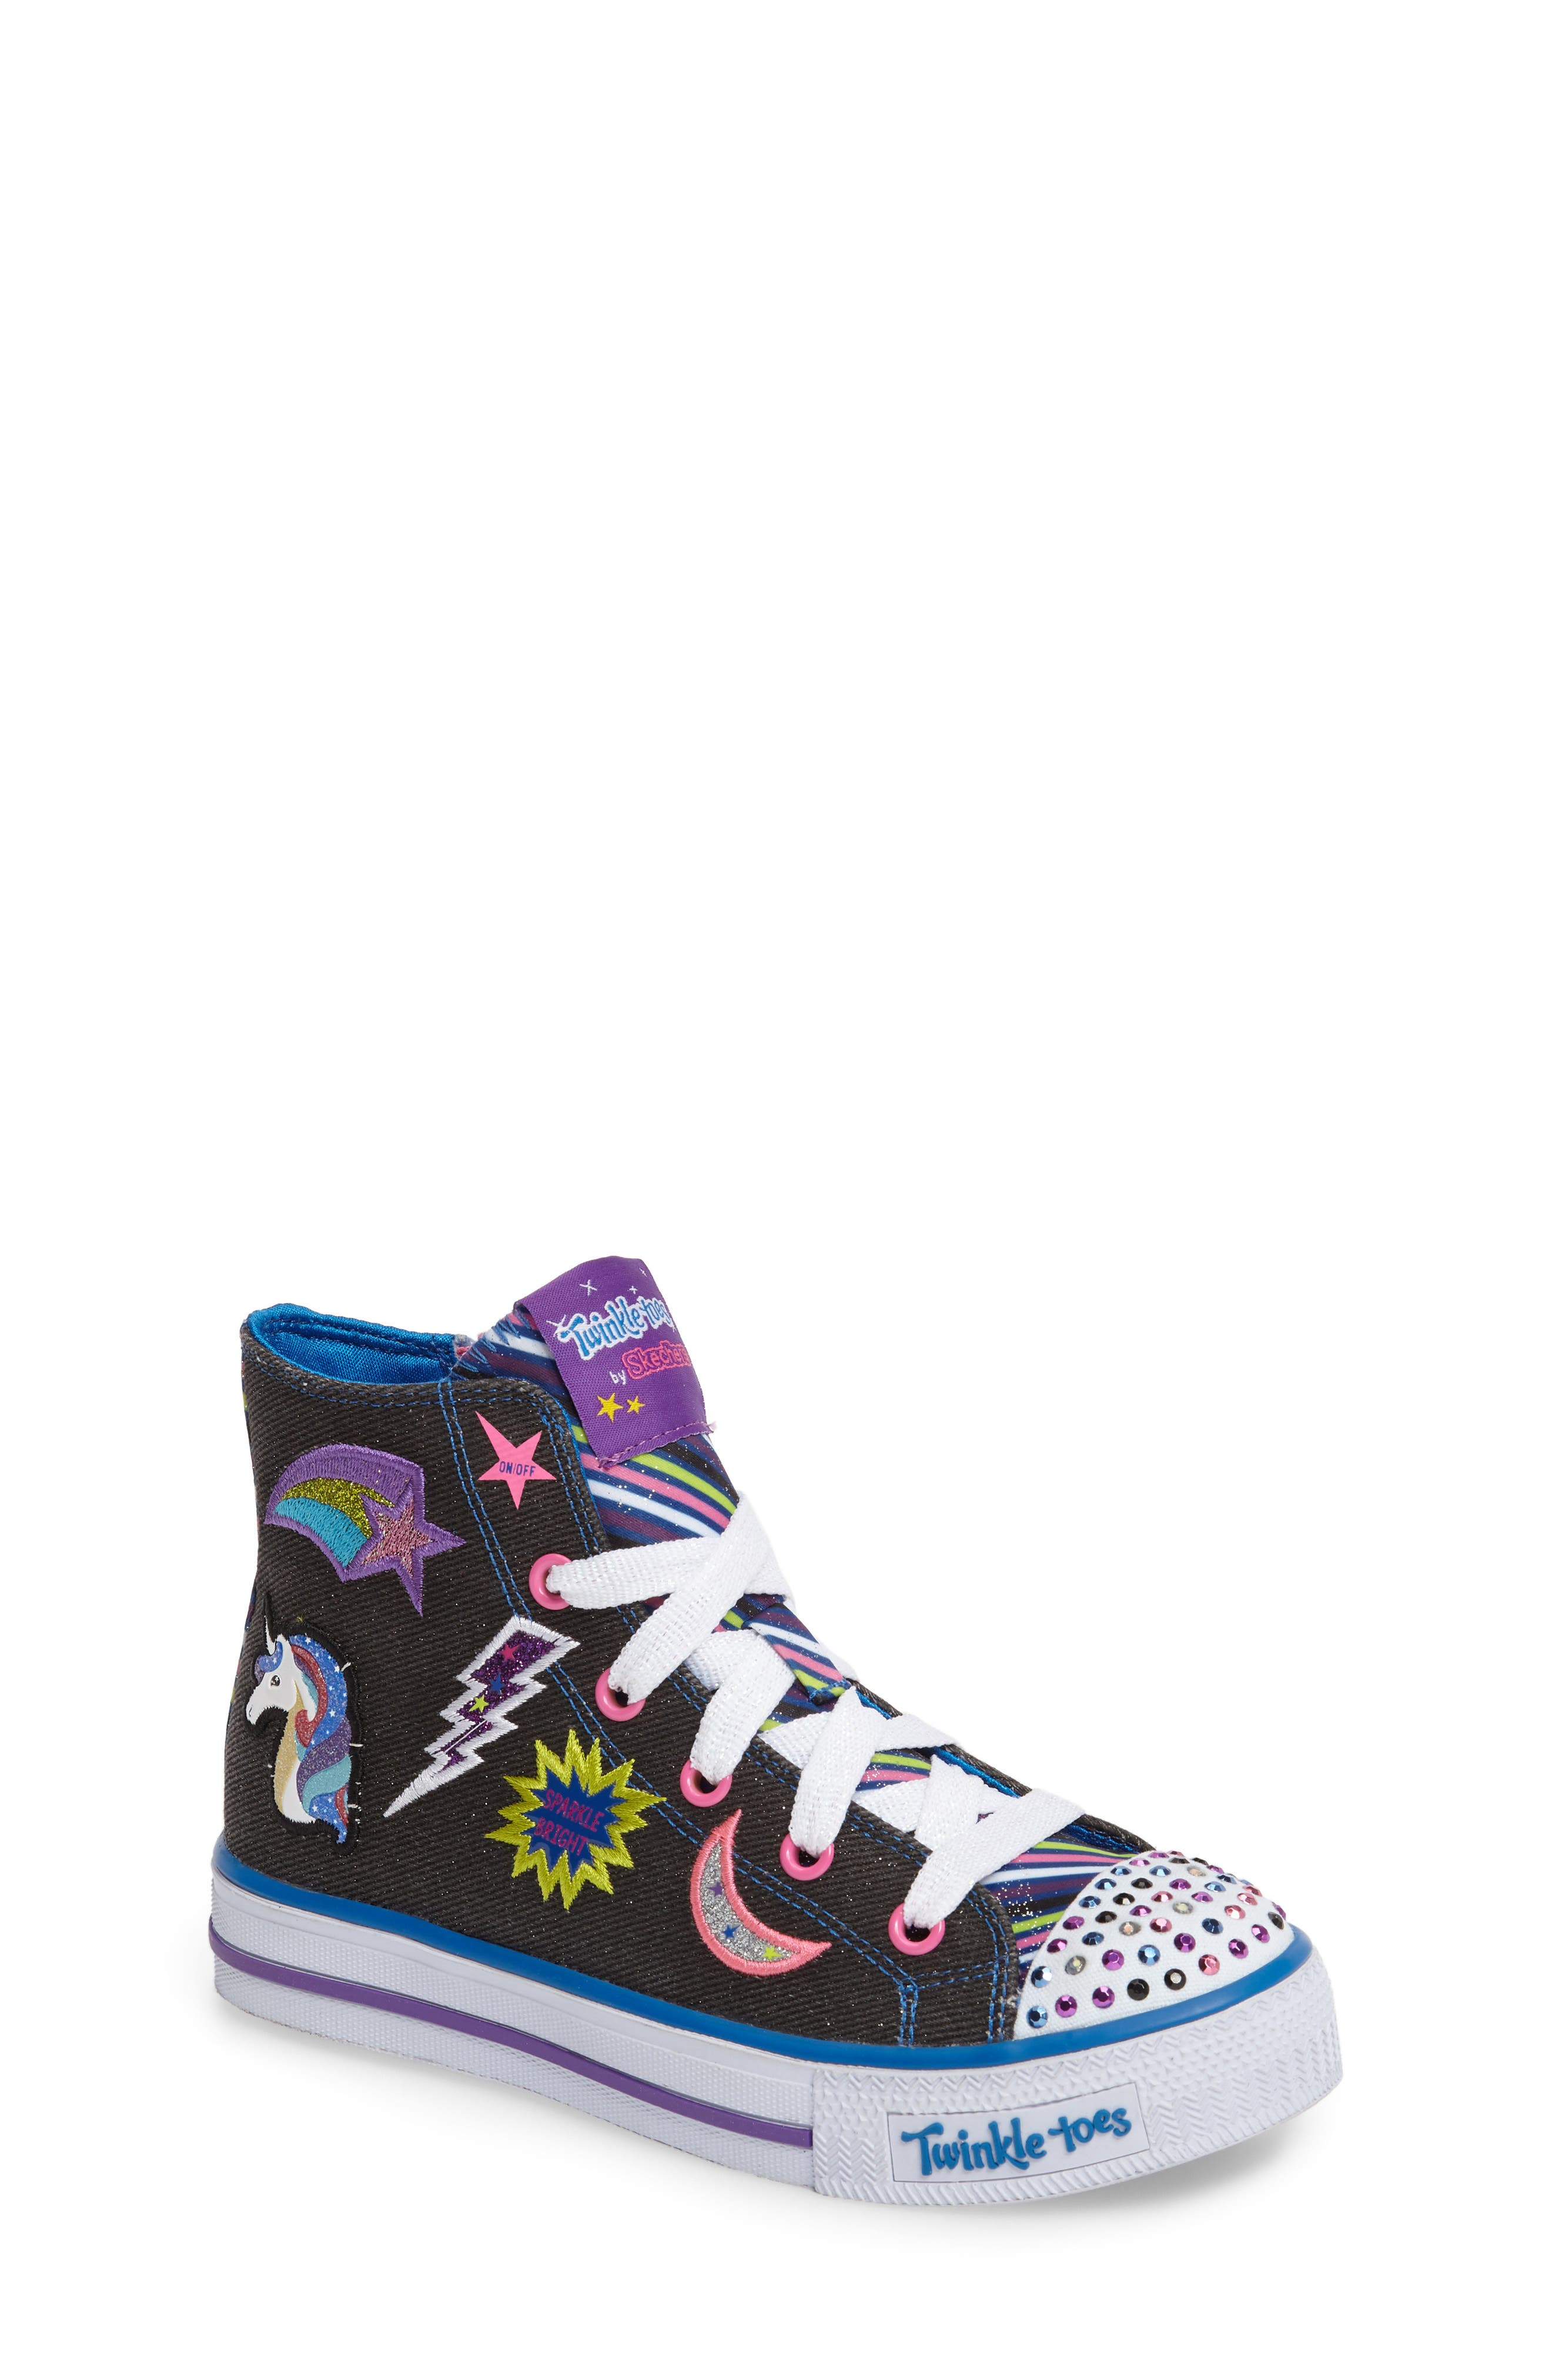 Twinkle Toes Shuffles Light-Up High Top Sneaker,                         Main,                         color,